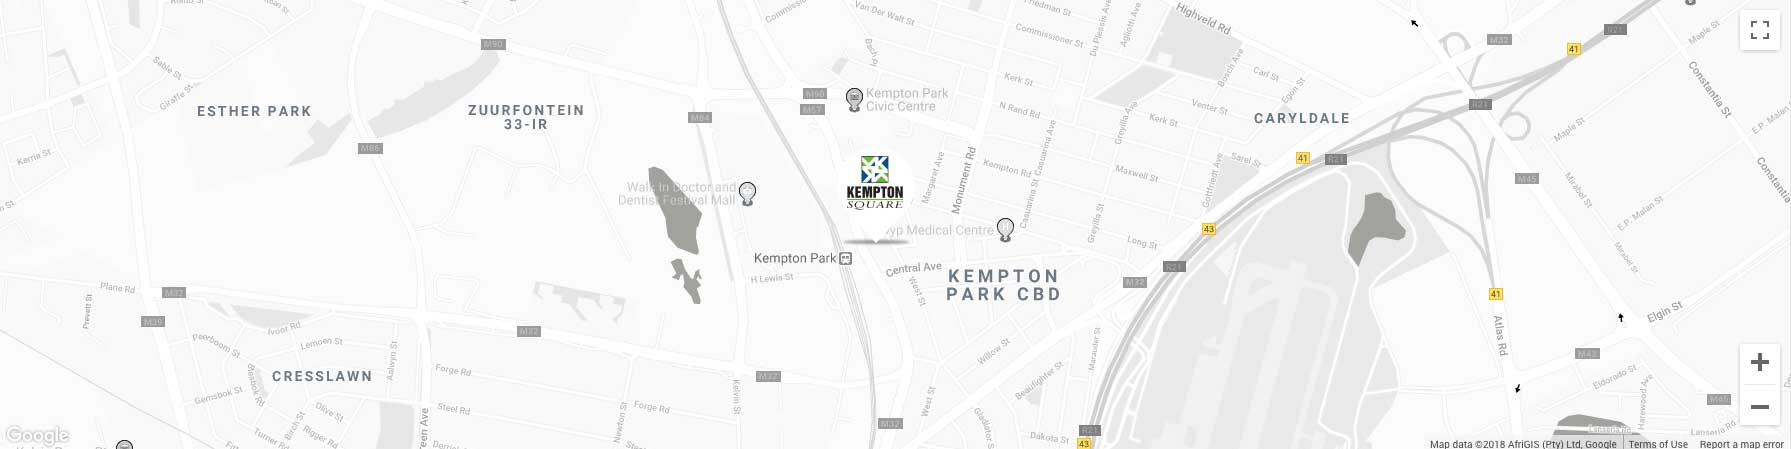 Kempton Square Mall and Shopping centre location map